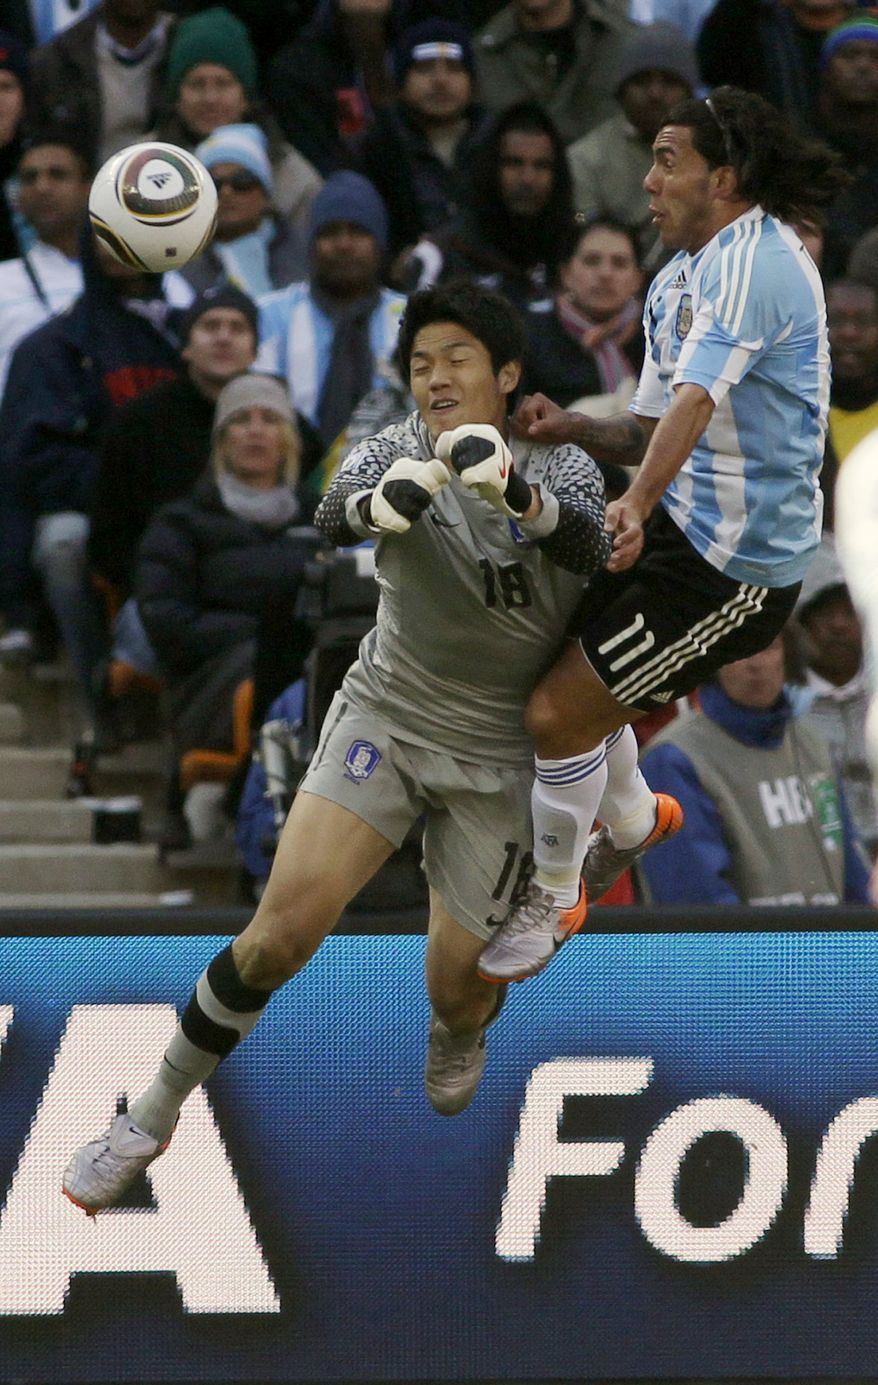 South Korea goalkeeper Jung Sung-Ryong, left, punches the ball away from Argentina's Carlos Tevez, right, during the World Cup group B soccer match between Argentina and South Korea at Soccer City in Johannesburg, South Africa, Thursday, June 17, 2010. (AP Photo/Ivan Sekretarev)